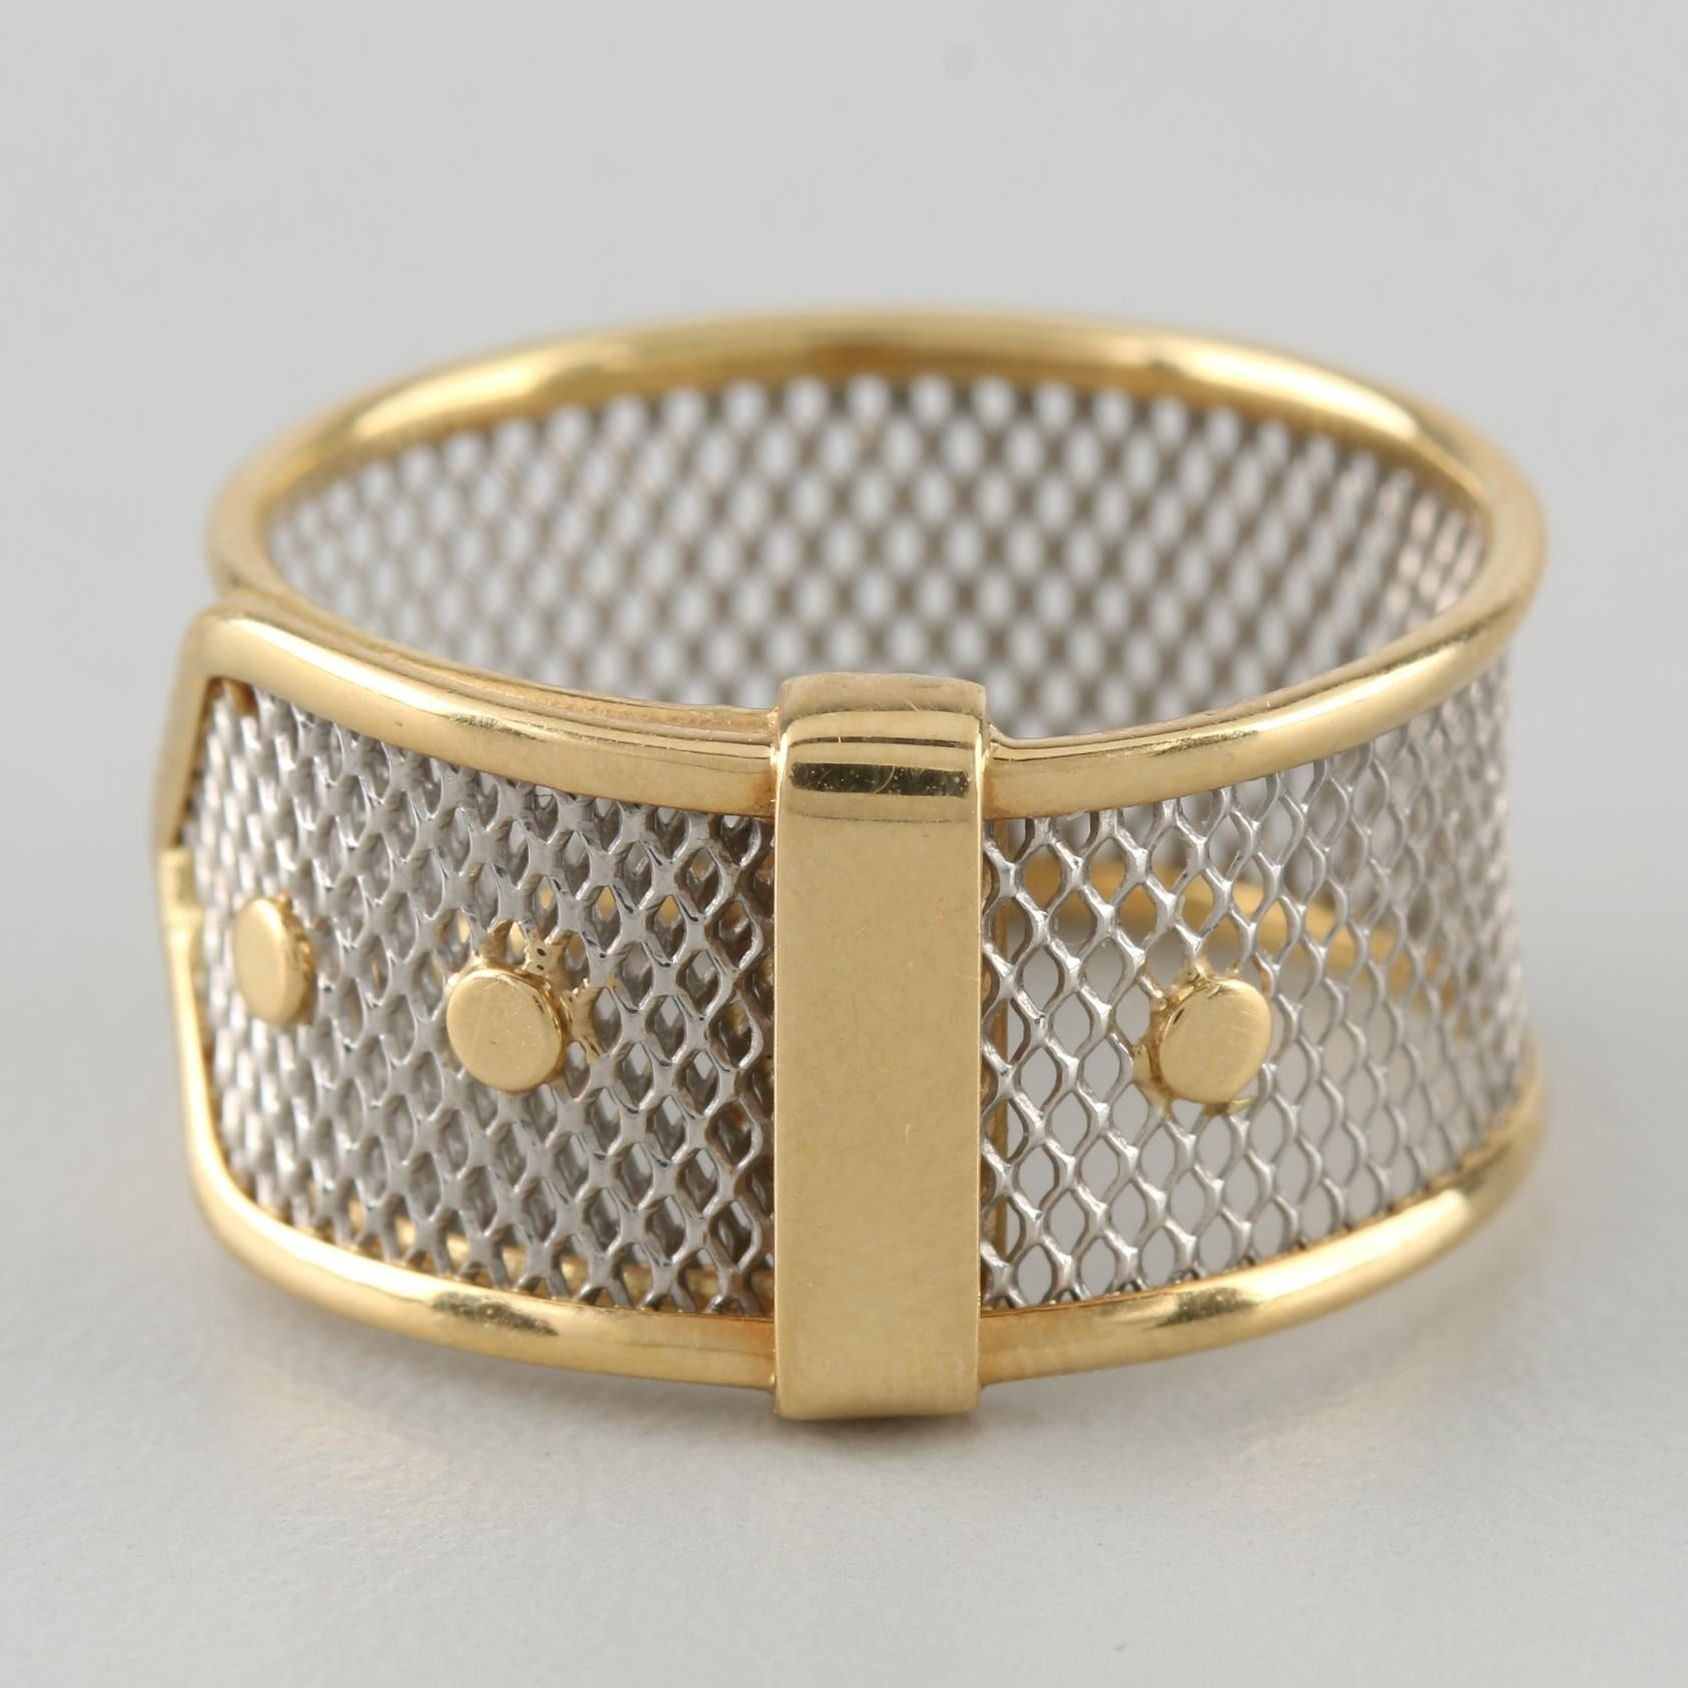 18K Yellow Gold and Platinum Two-Tone Mesh Buckle Ring